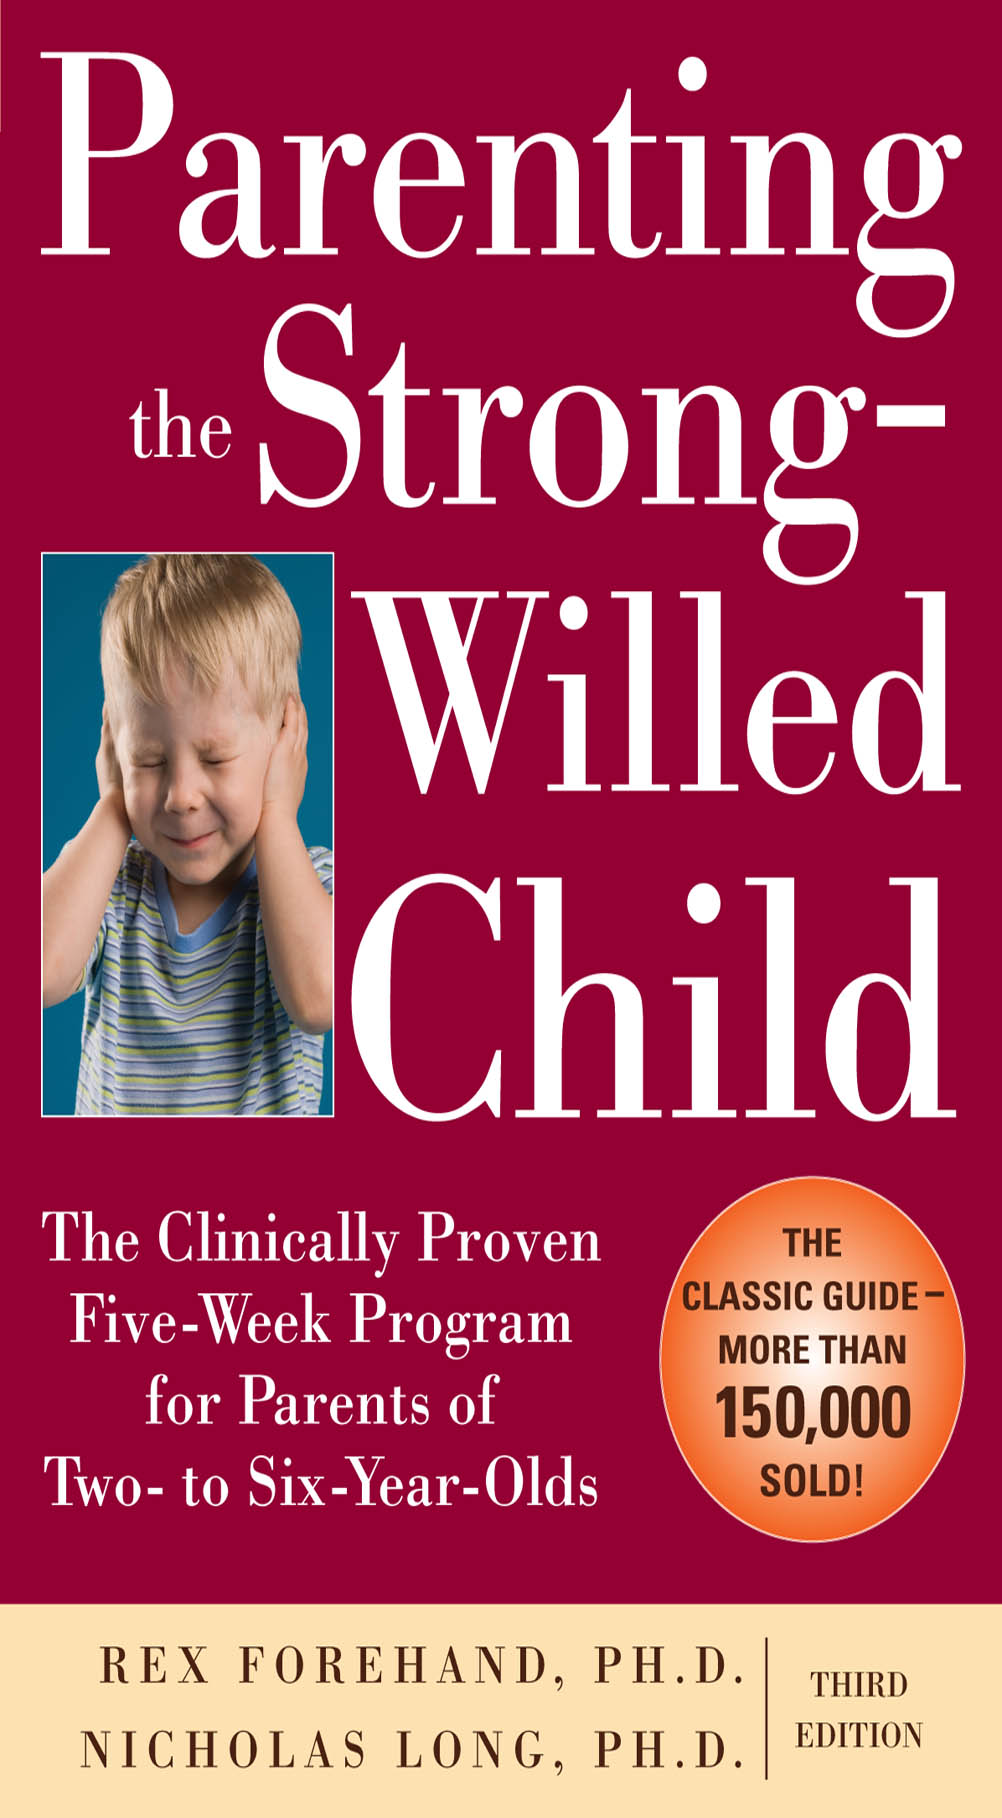 Download Ebook Parenting the Strong-Willed Child: The Clinically Proven Five-Week Program for Parents of Two- to Six-Year-Olds, Third Edition (3rd ed.) by Rex Forehand Pdf